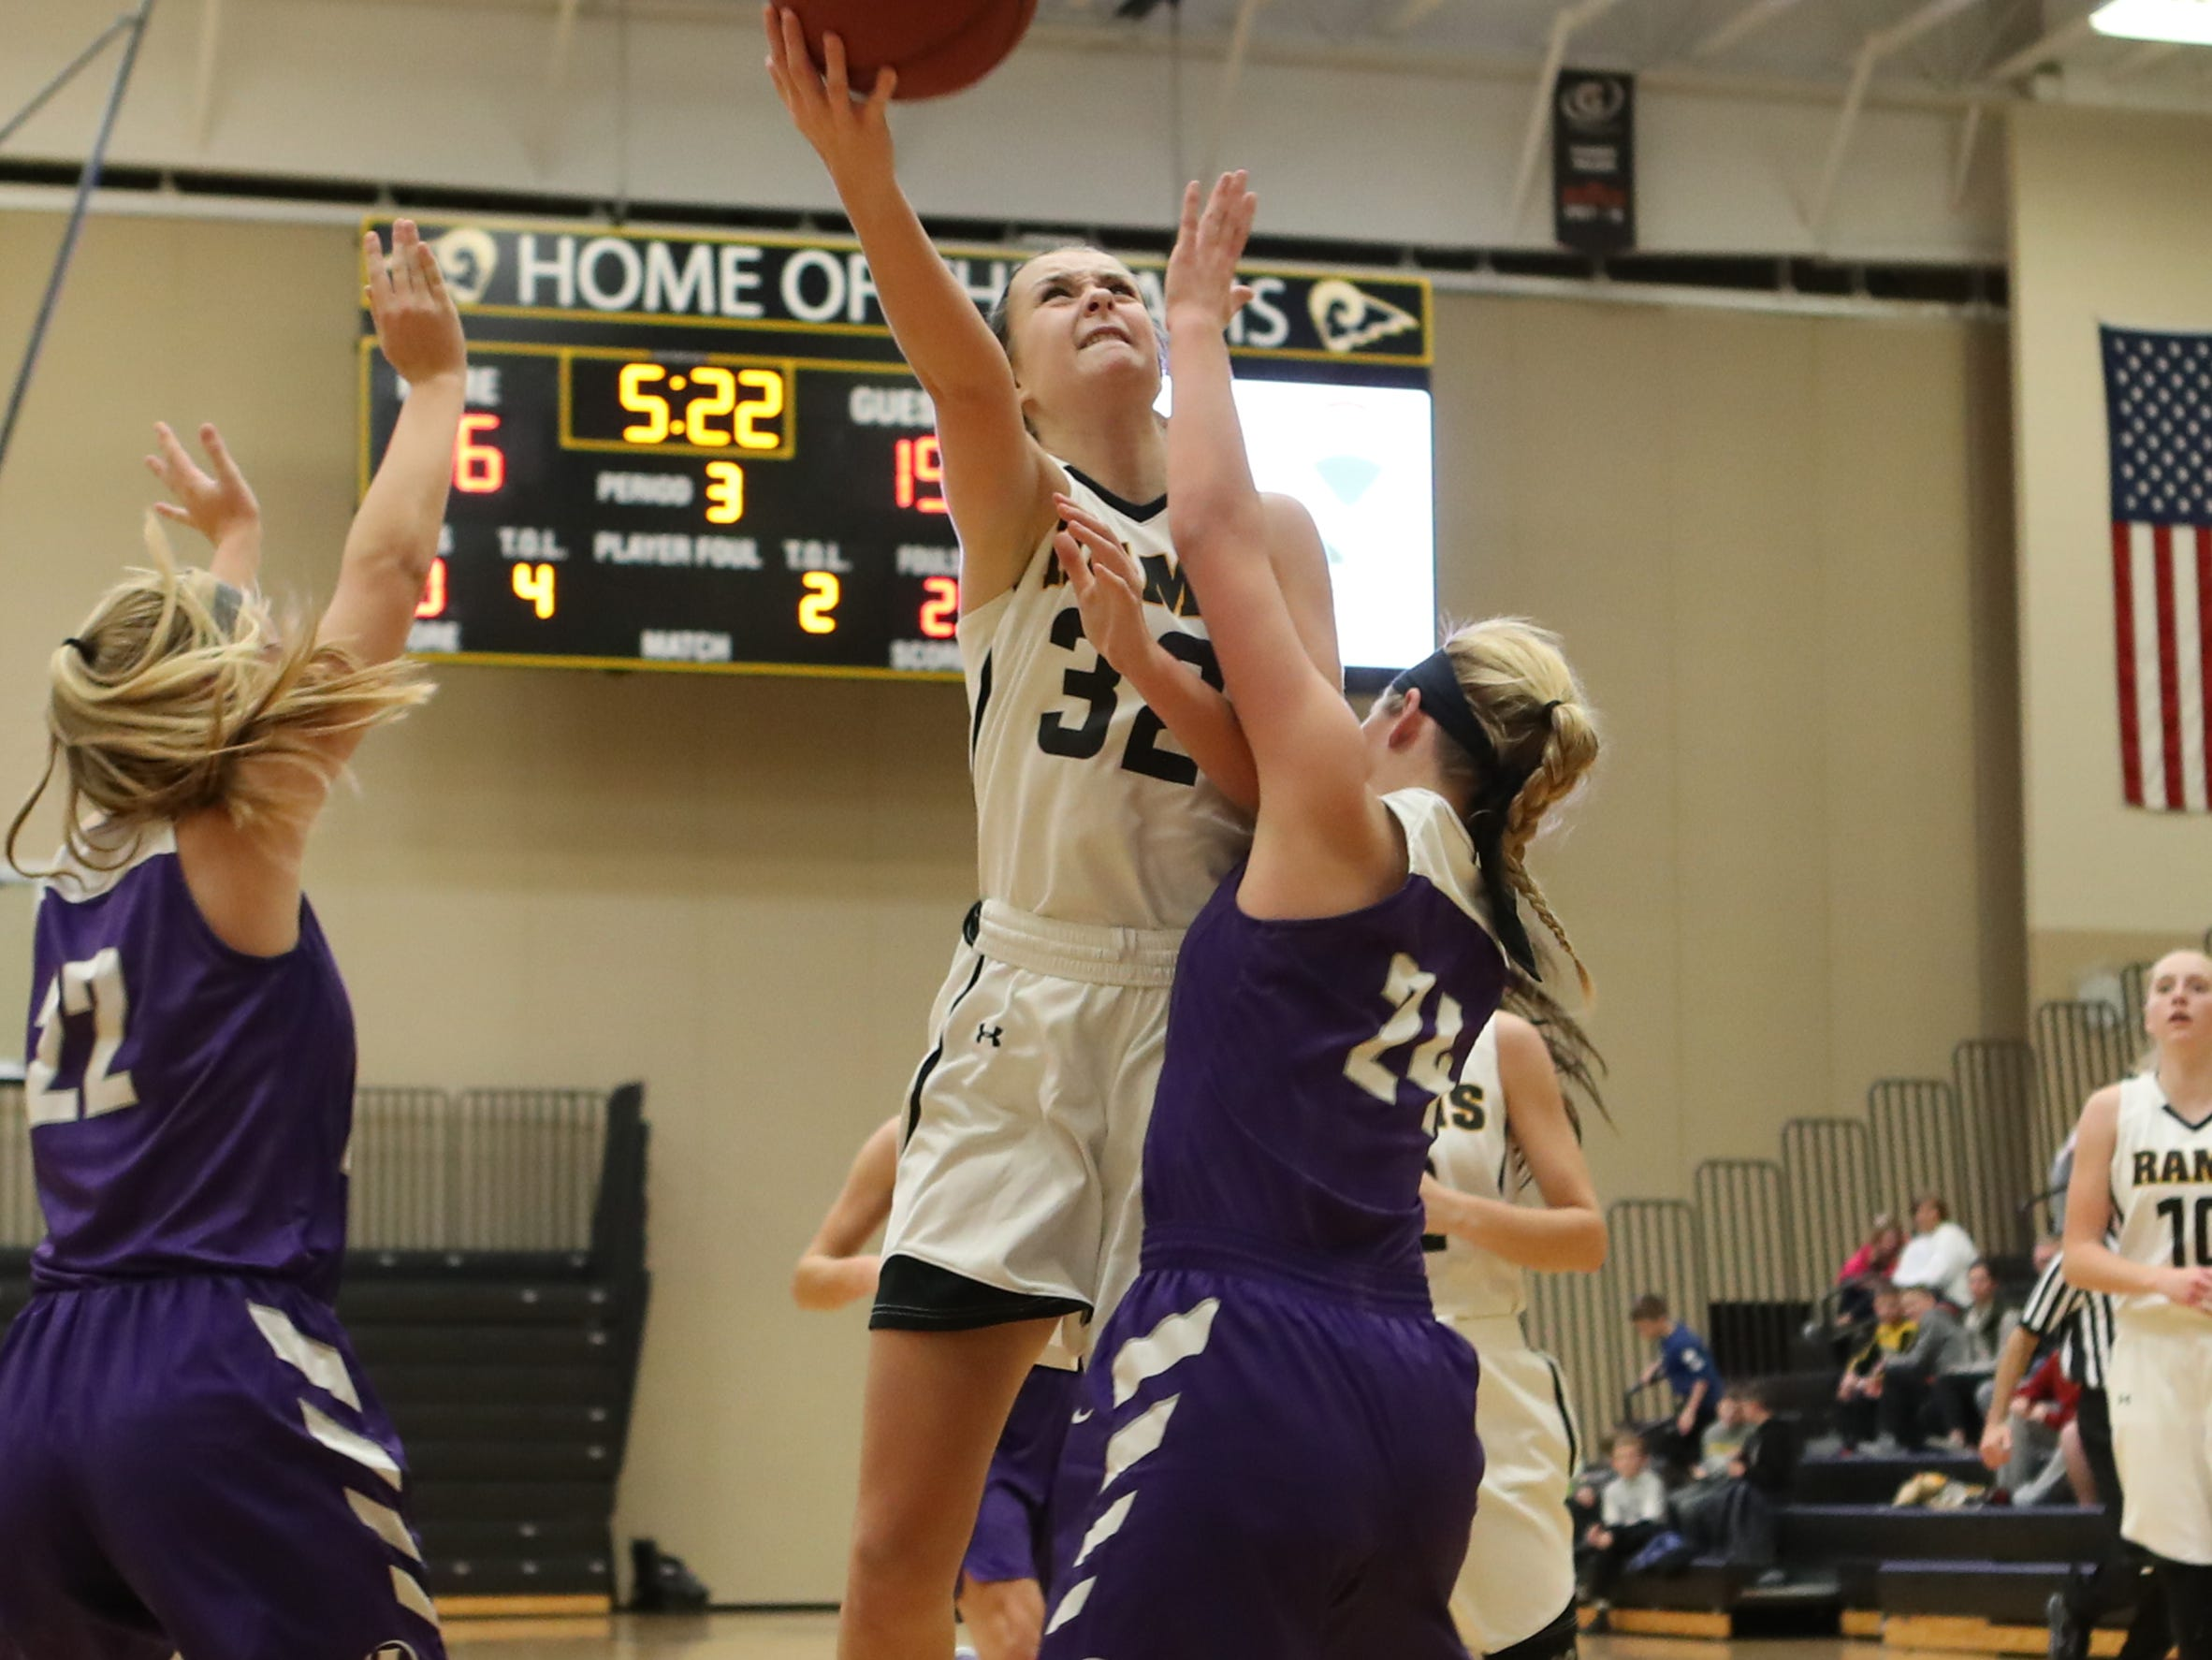 Nov 20, 2018; Pleasant Hill, IA, USA; Southeast Polk Rams Maggie McGraw (32) scores a basket against the Indianola Indians at Southeast Polk Gymnasium.